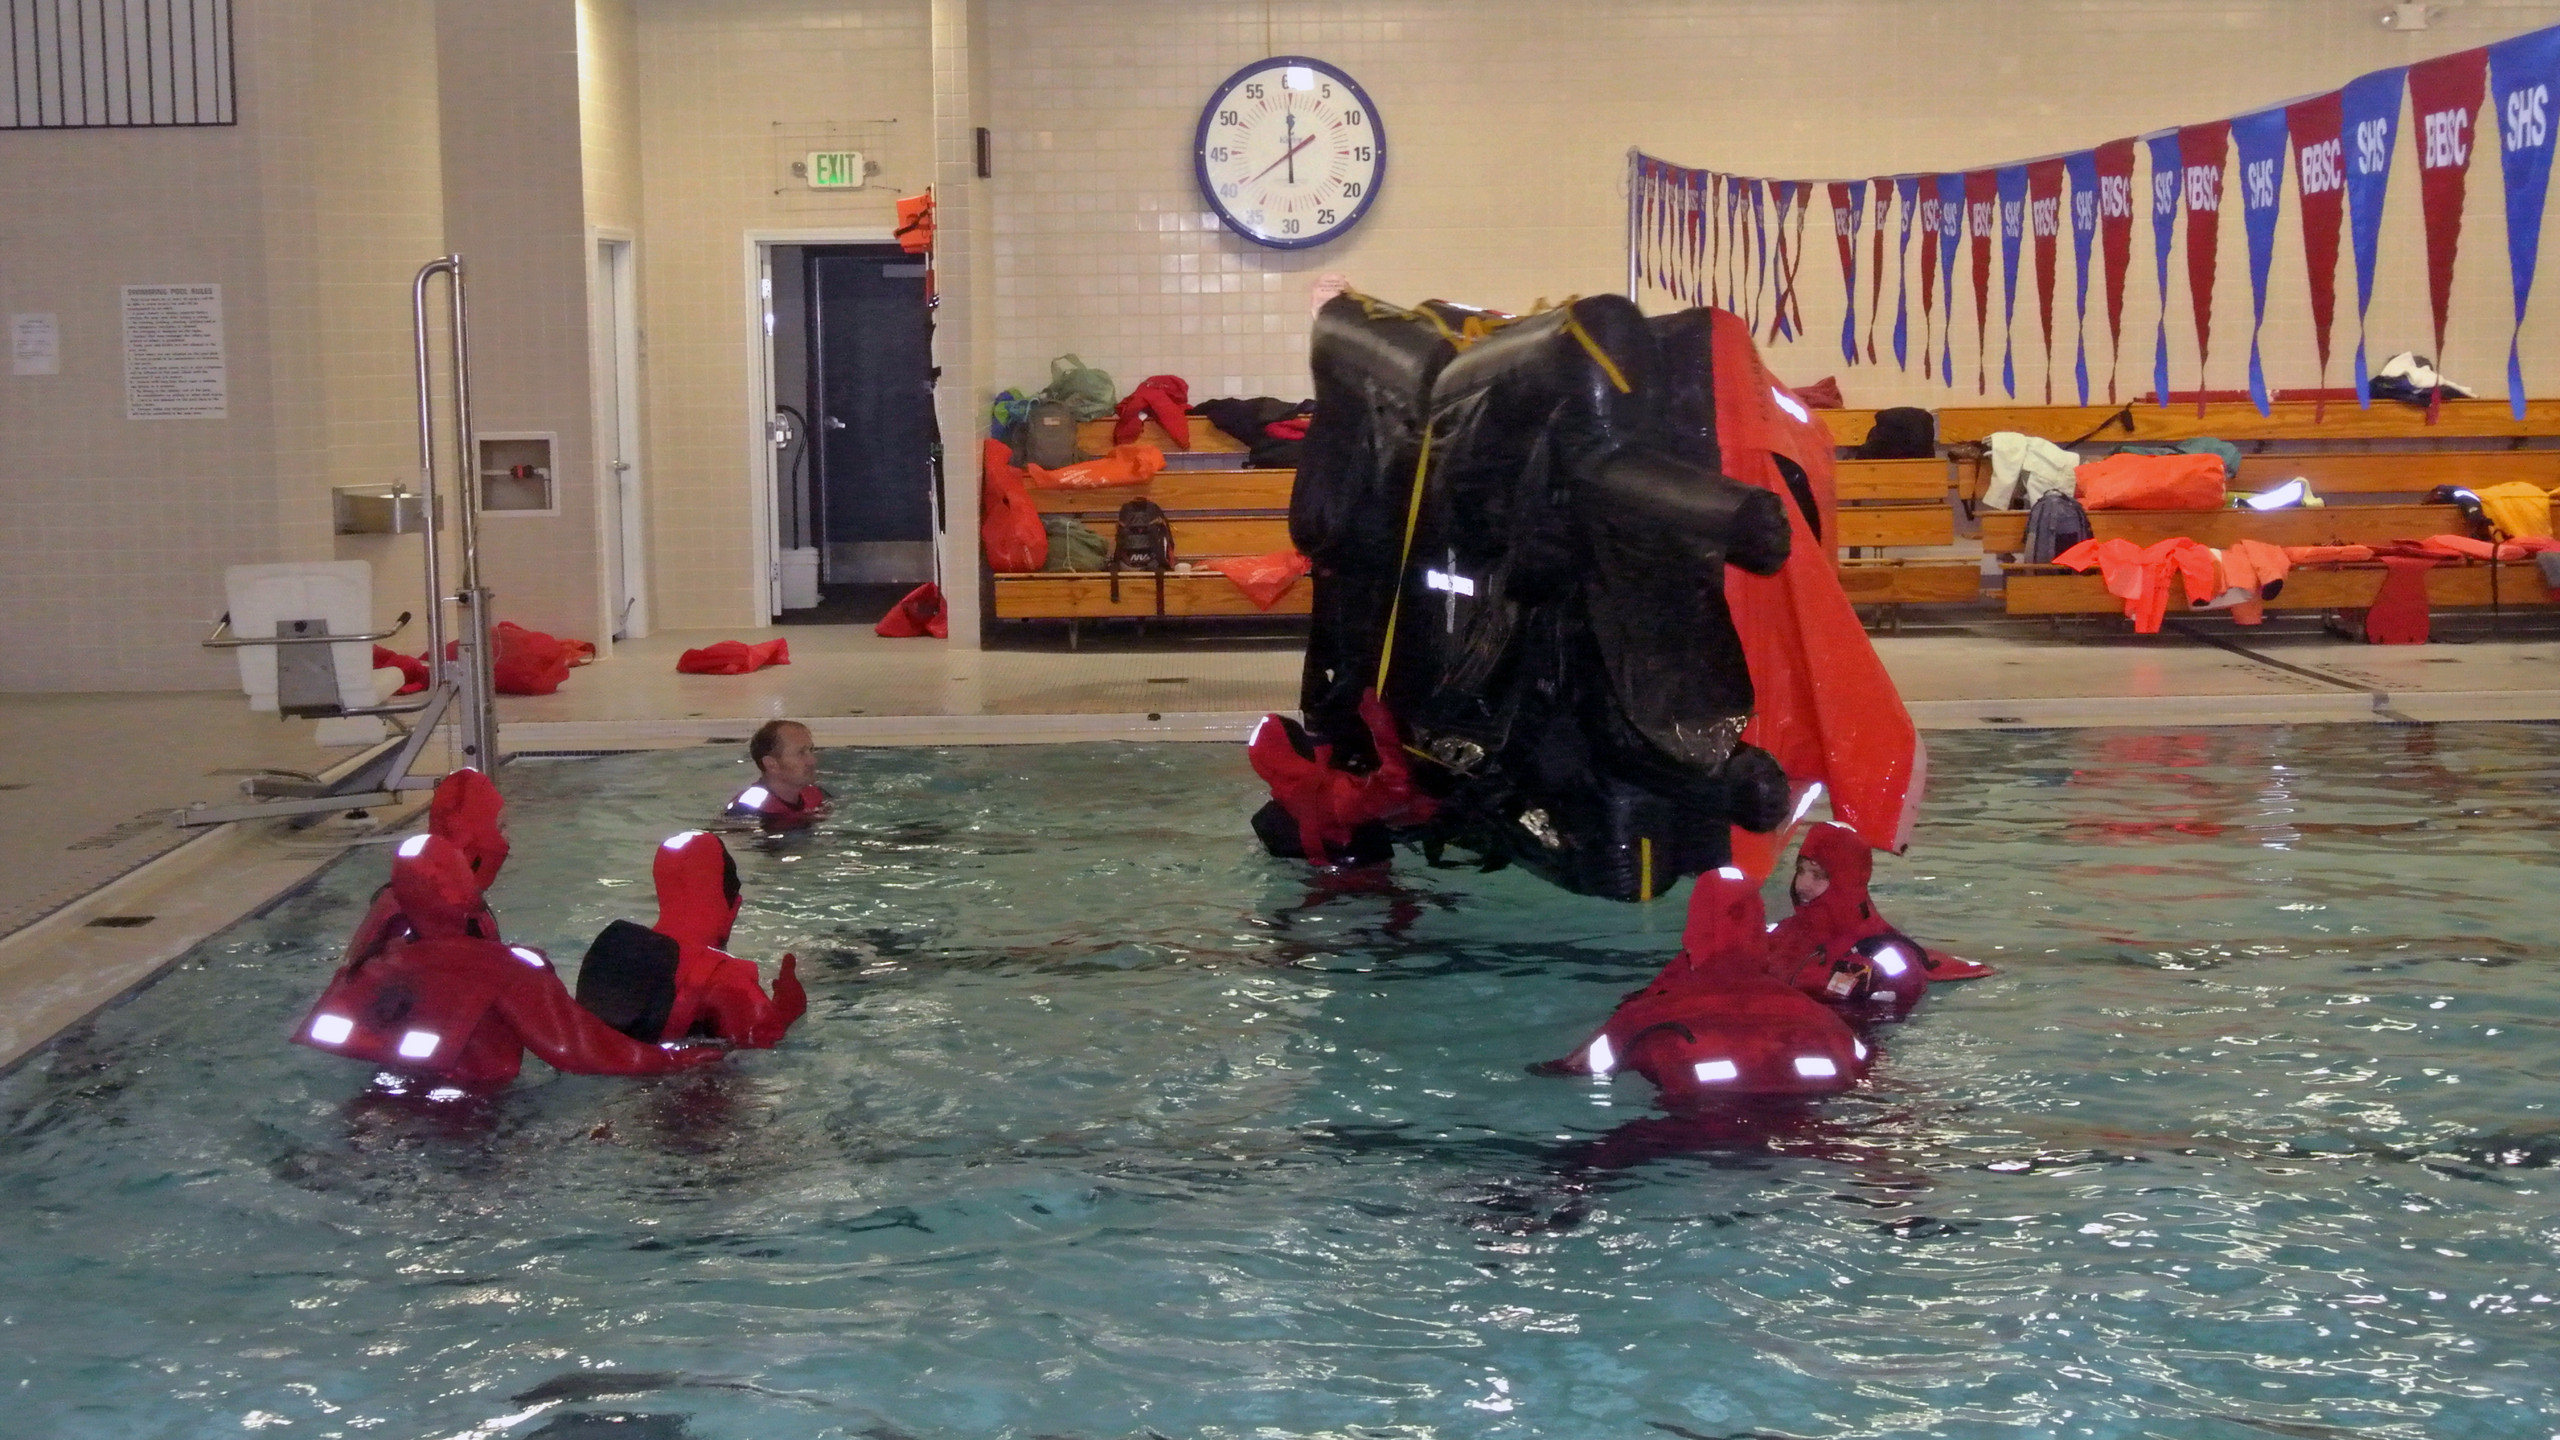 Righting a Life Raft